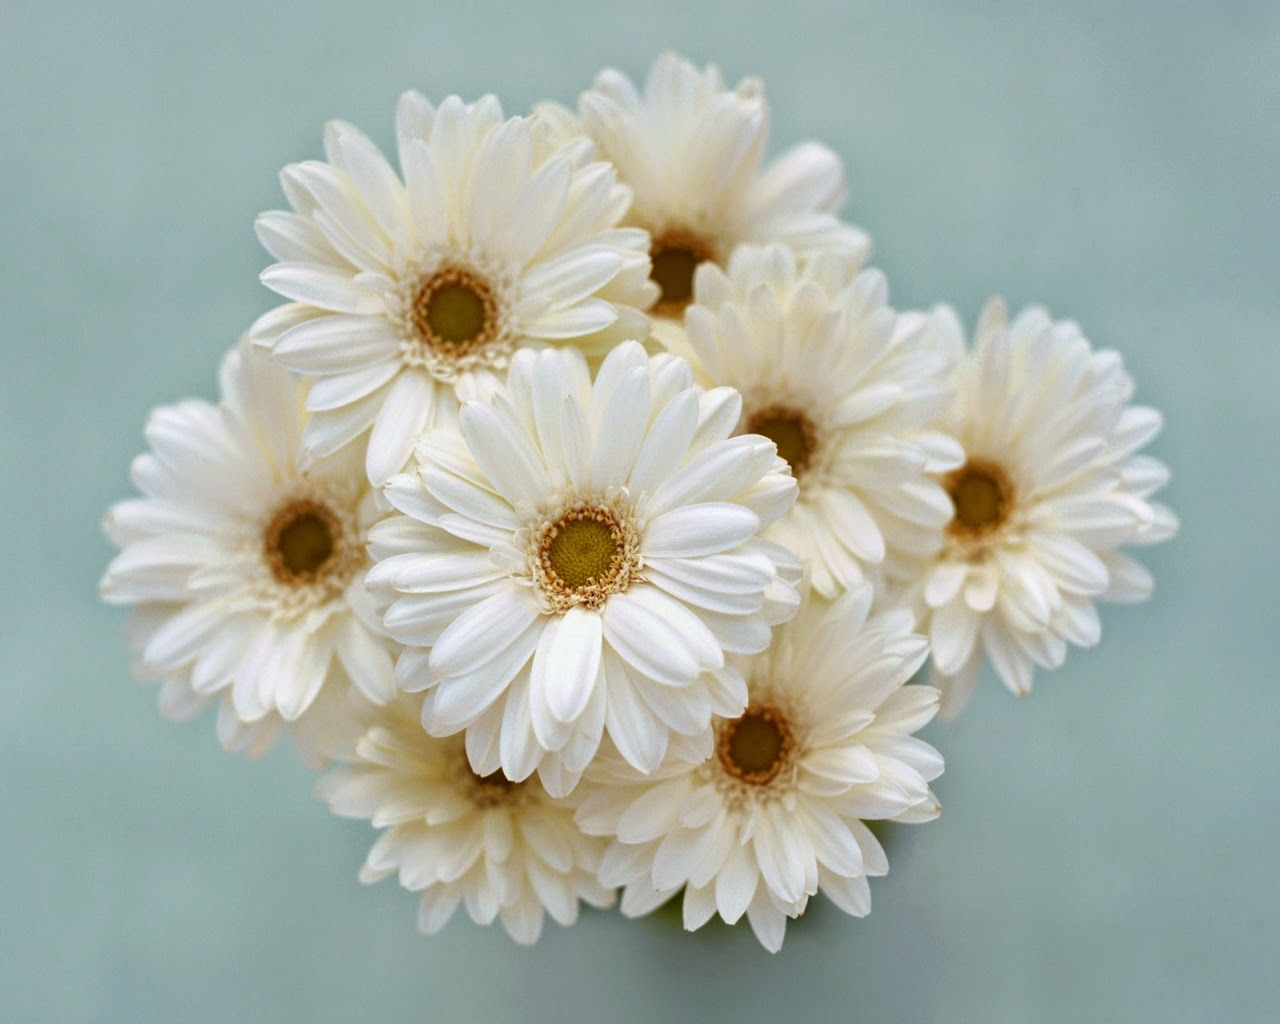 Love Images, White Flowers part 2